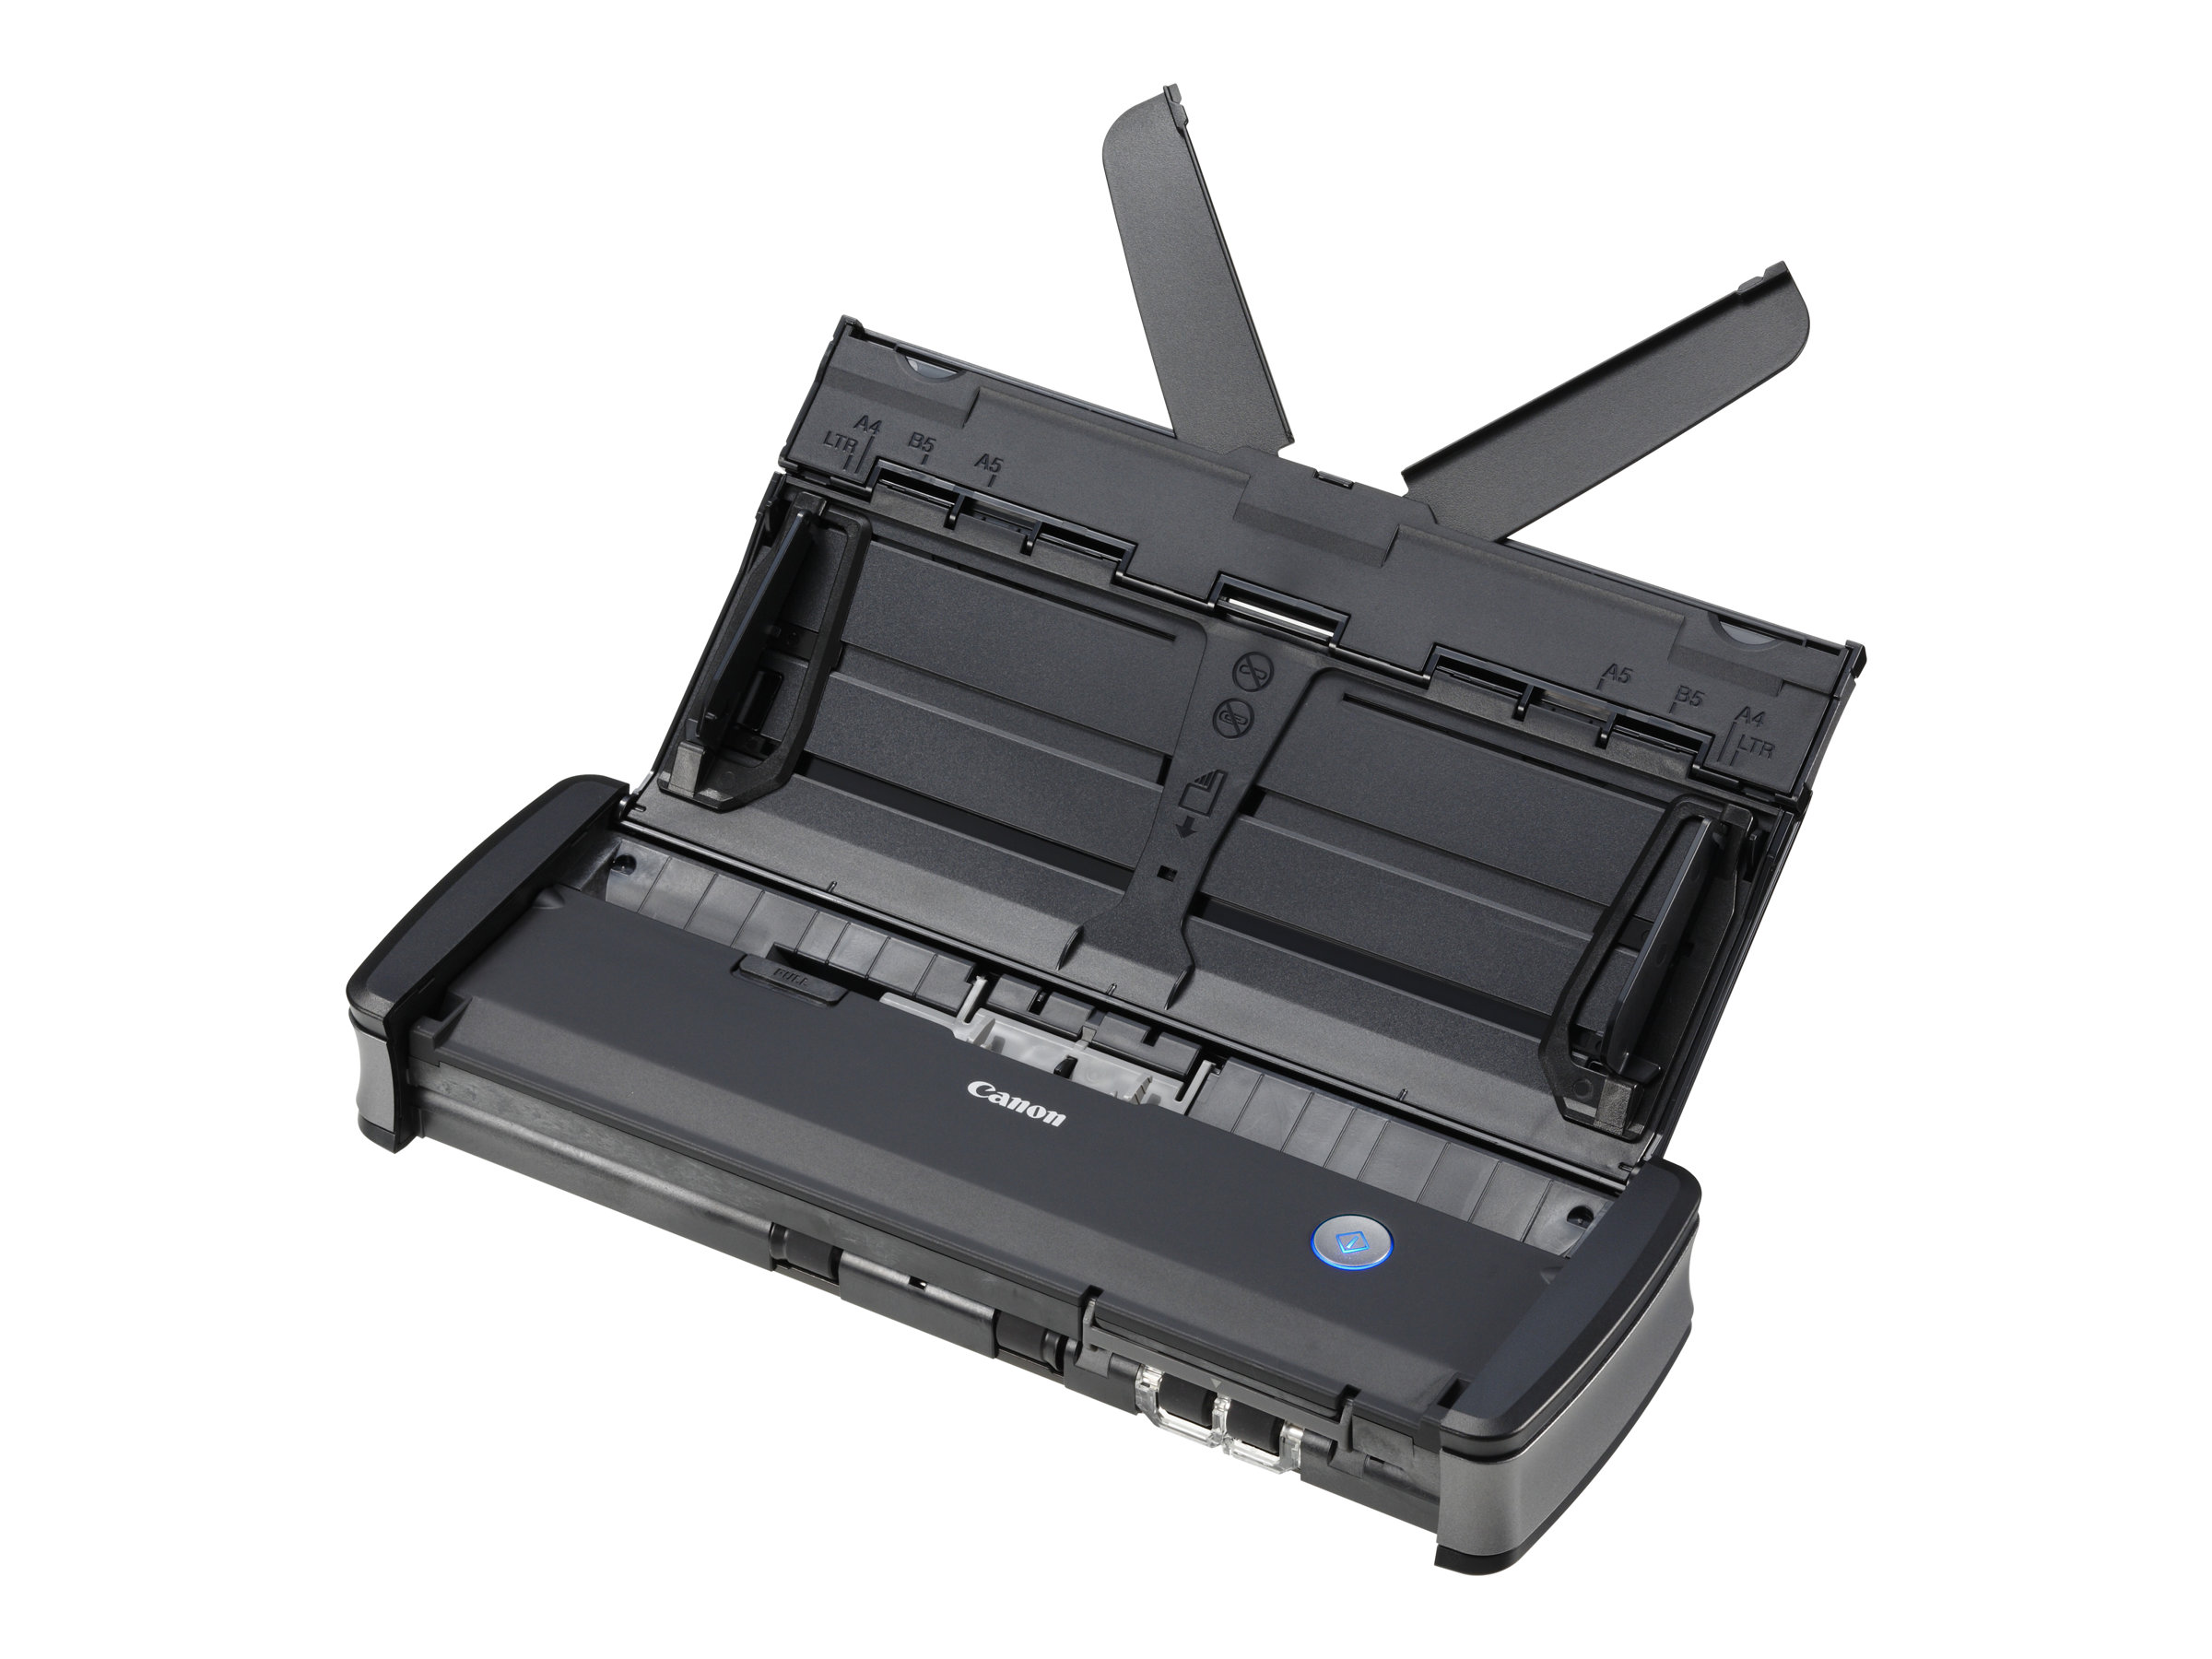 Canon imageFORMULA P-215II - scanner de documents - portable - USB 2.0